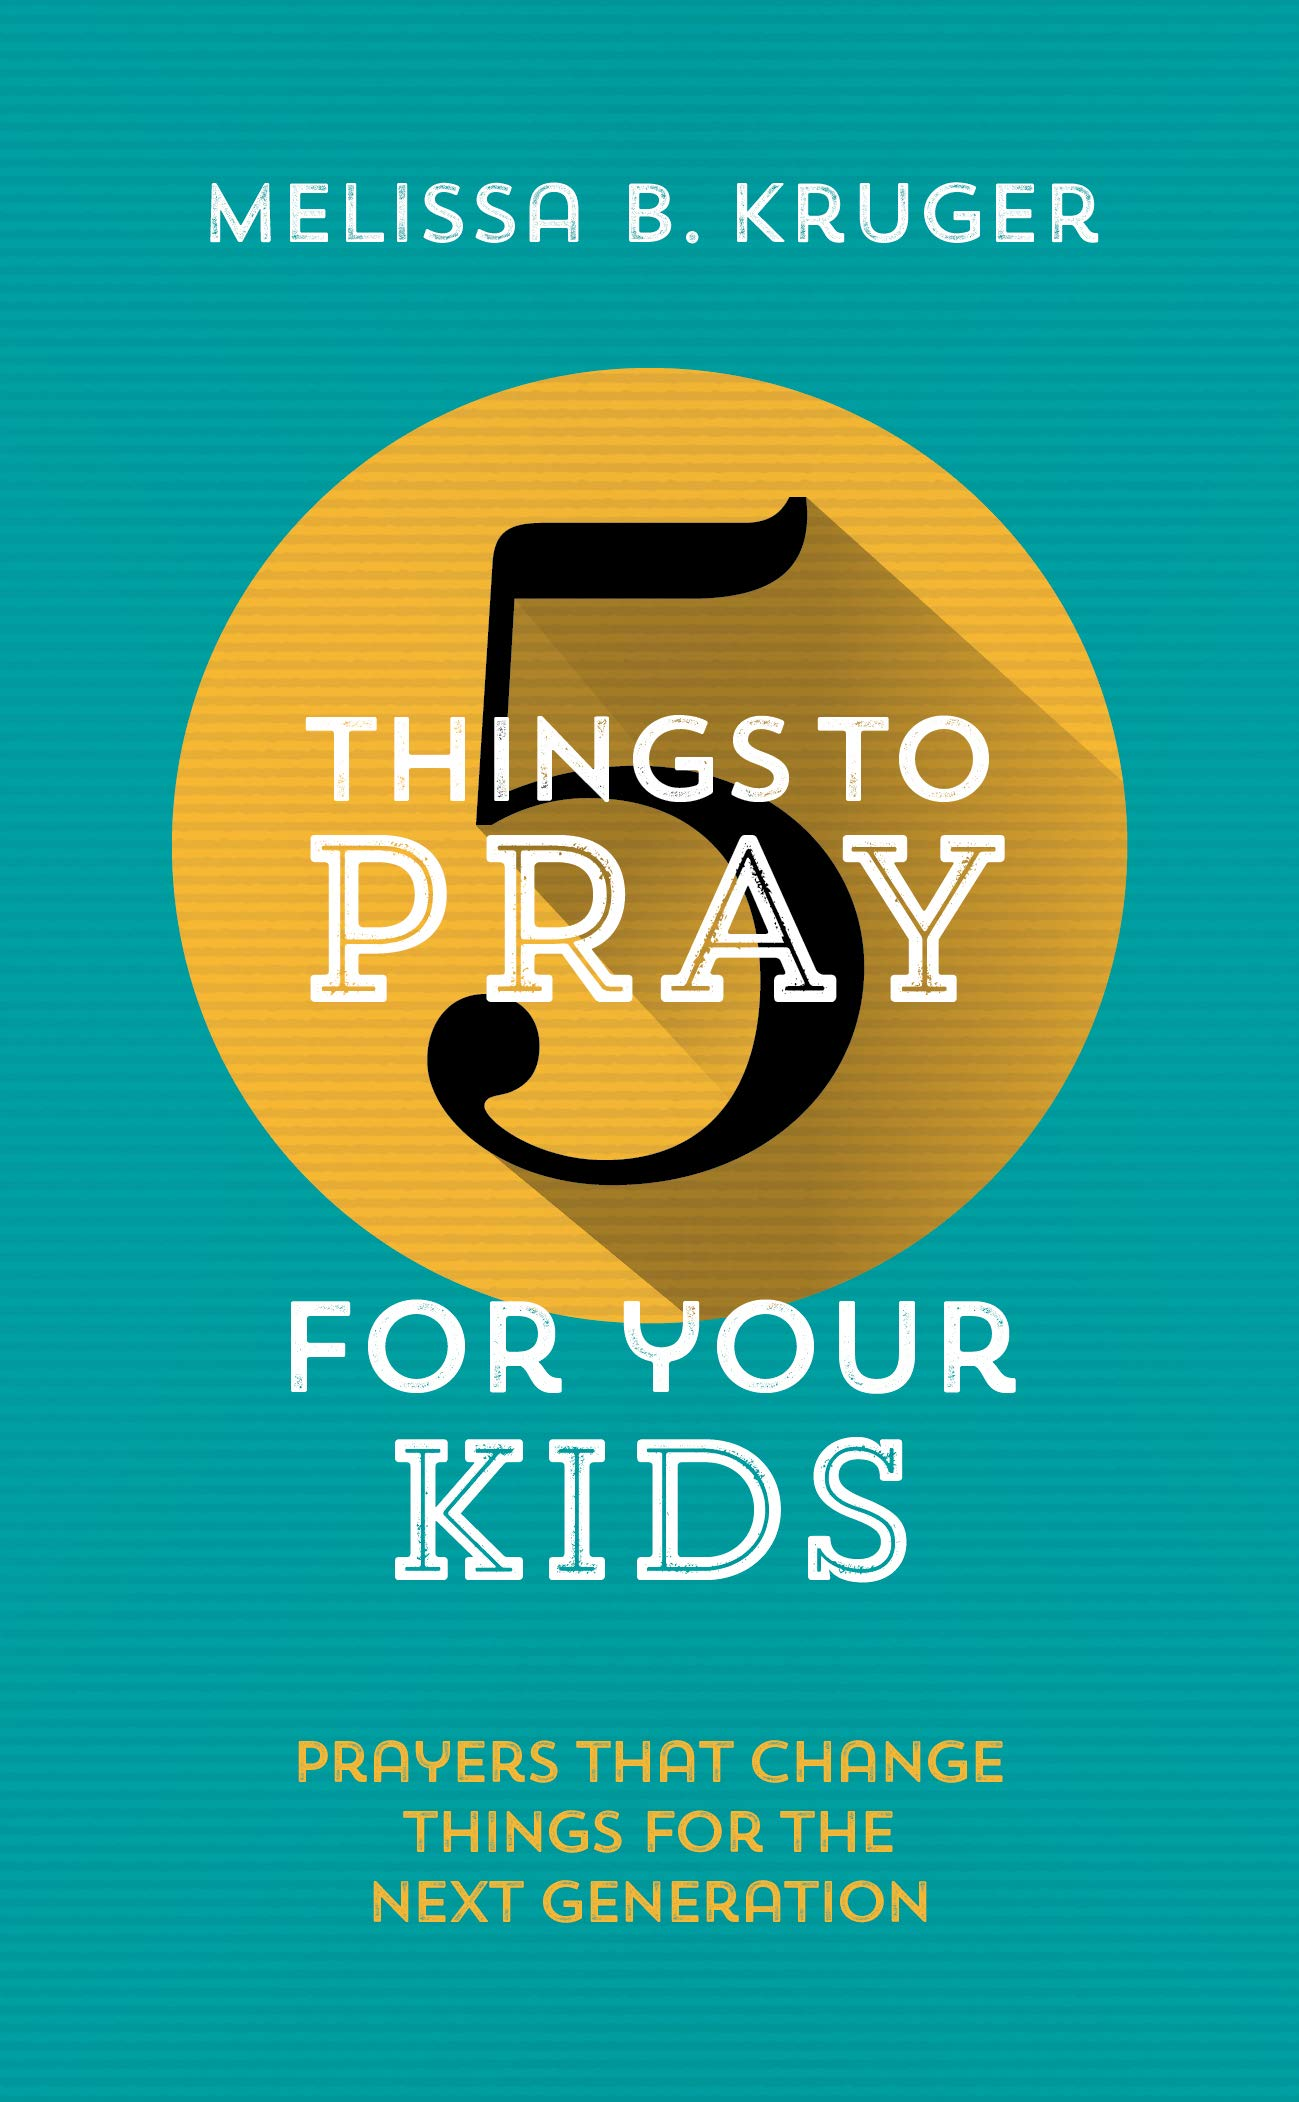 5 Things to Pray for Your Kids, Melissa Kruger